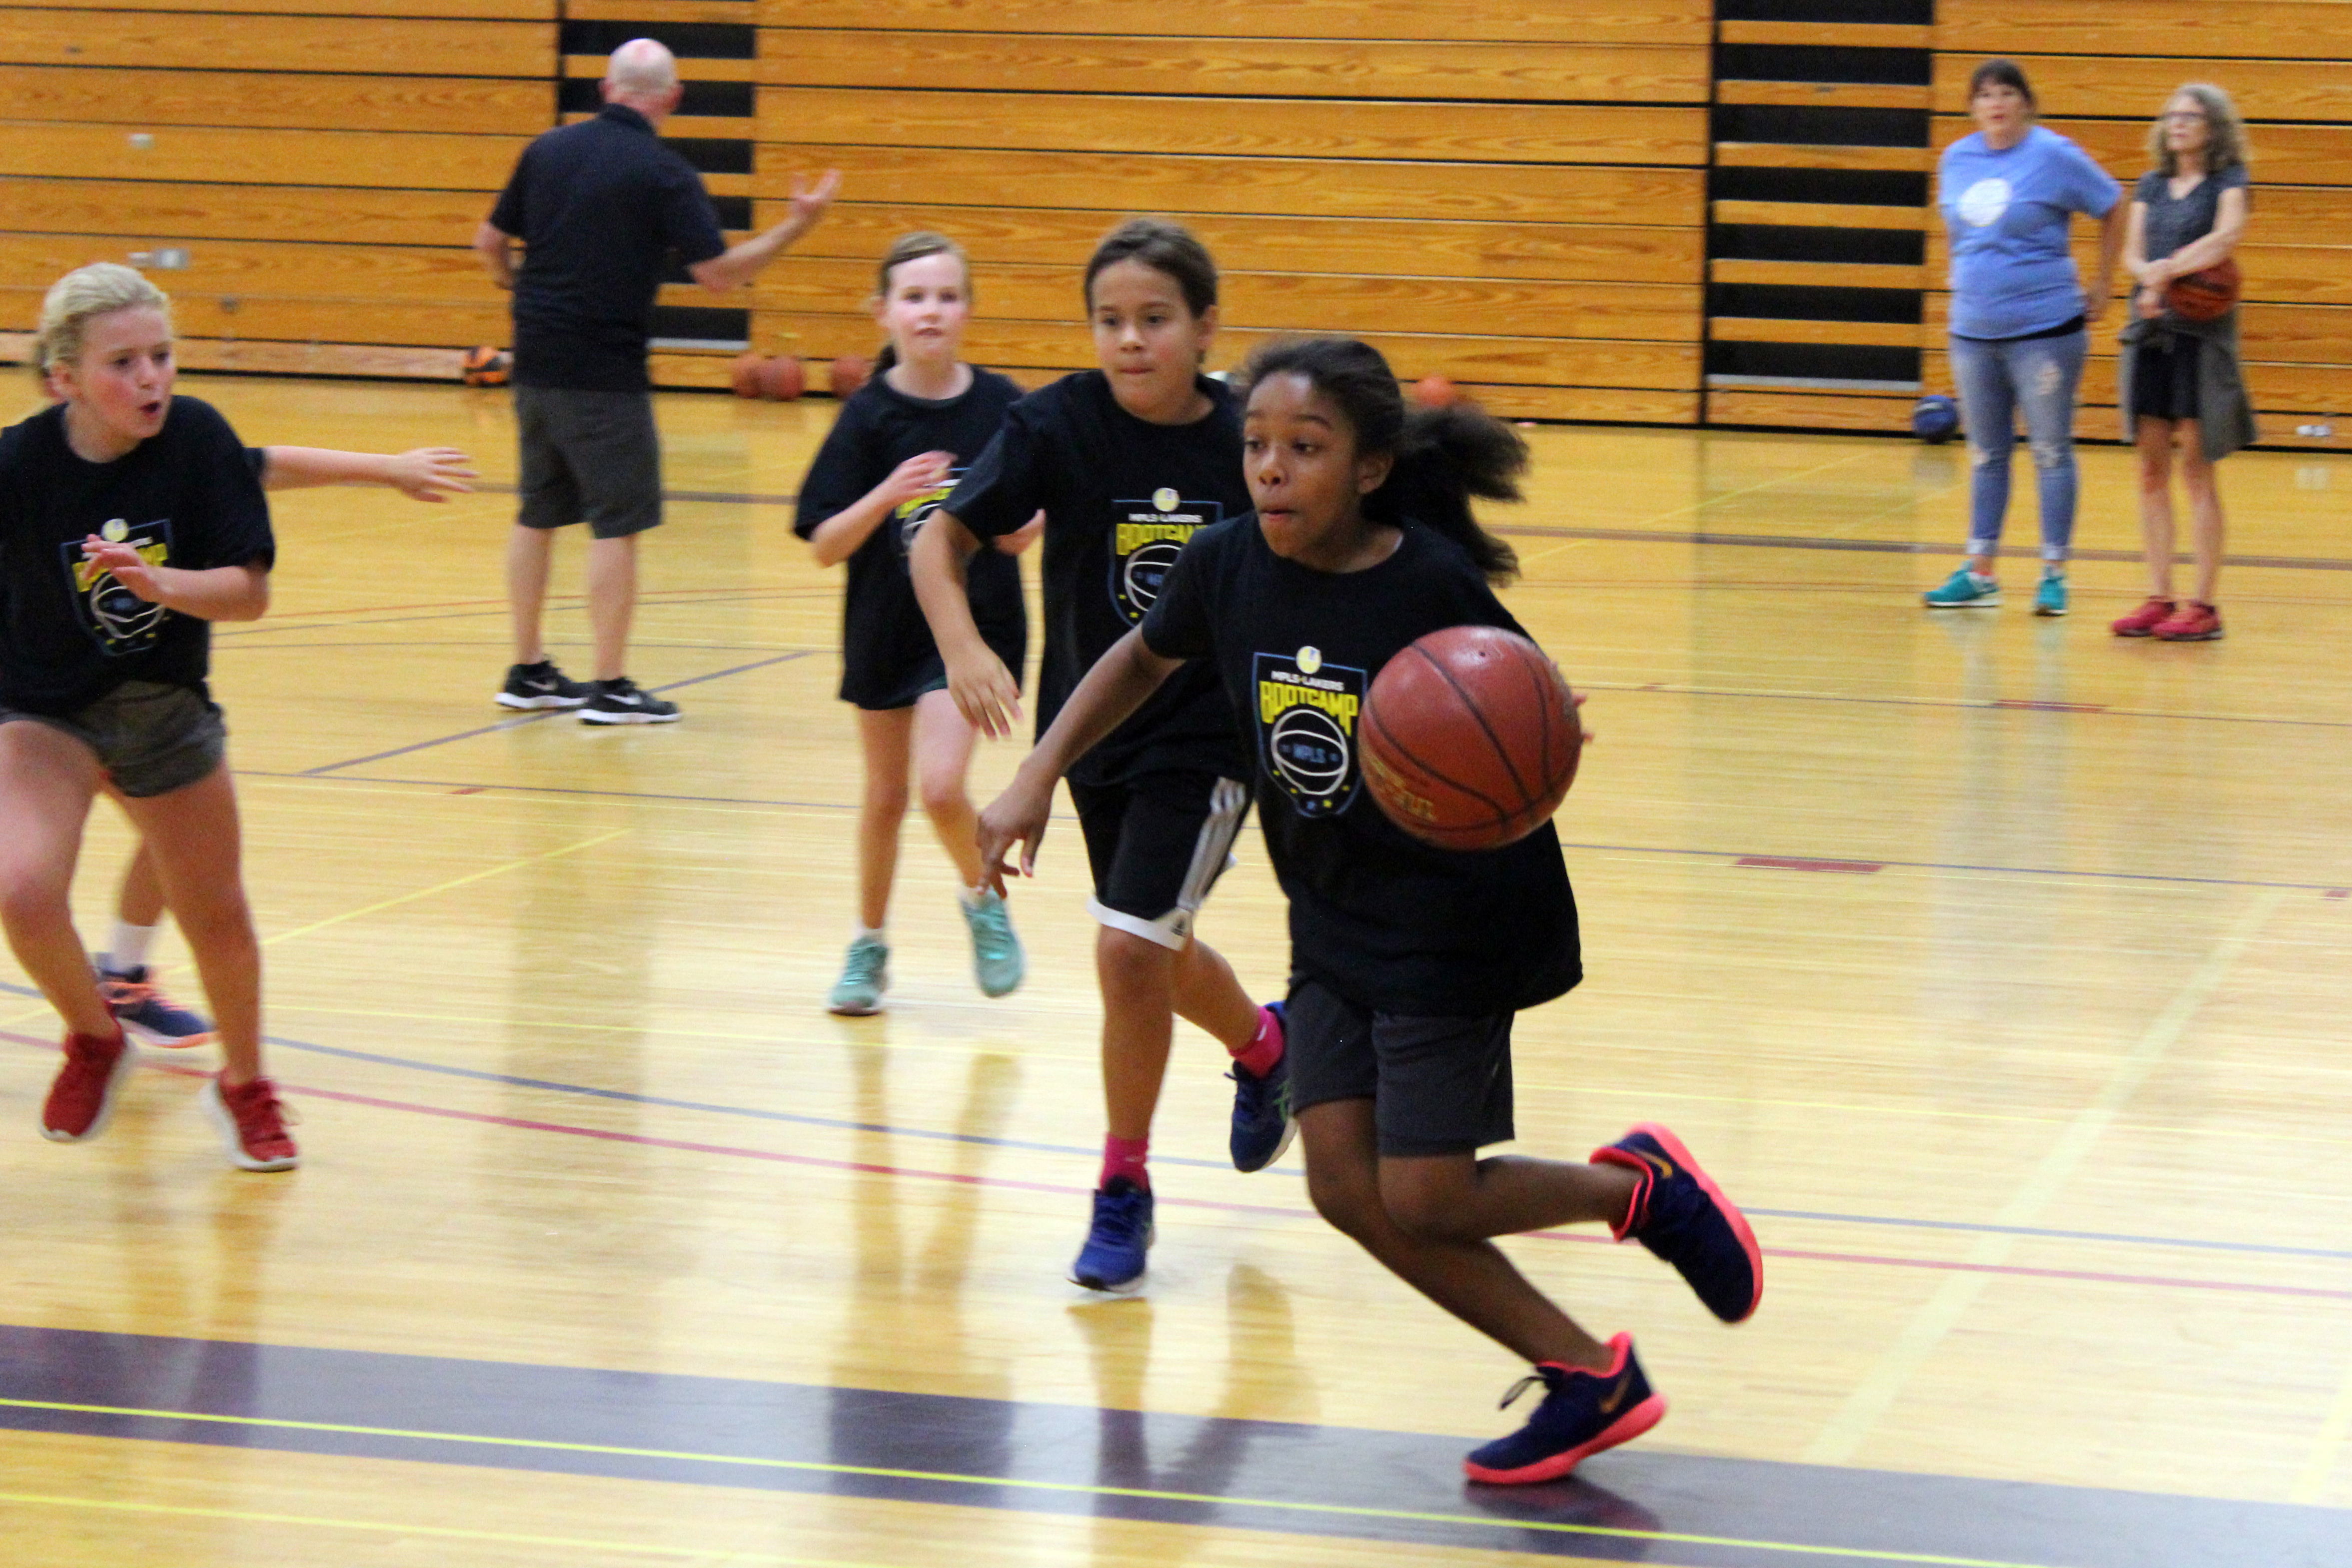 Mpls Lakers Youth Traveling Basketball Program Inc 2019 Boot Camp Training Sessions highlights